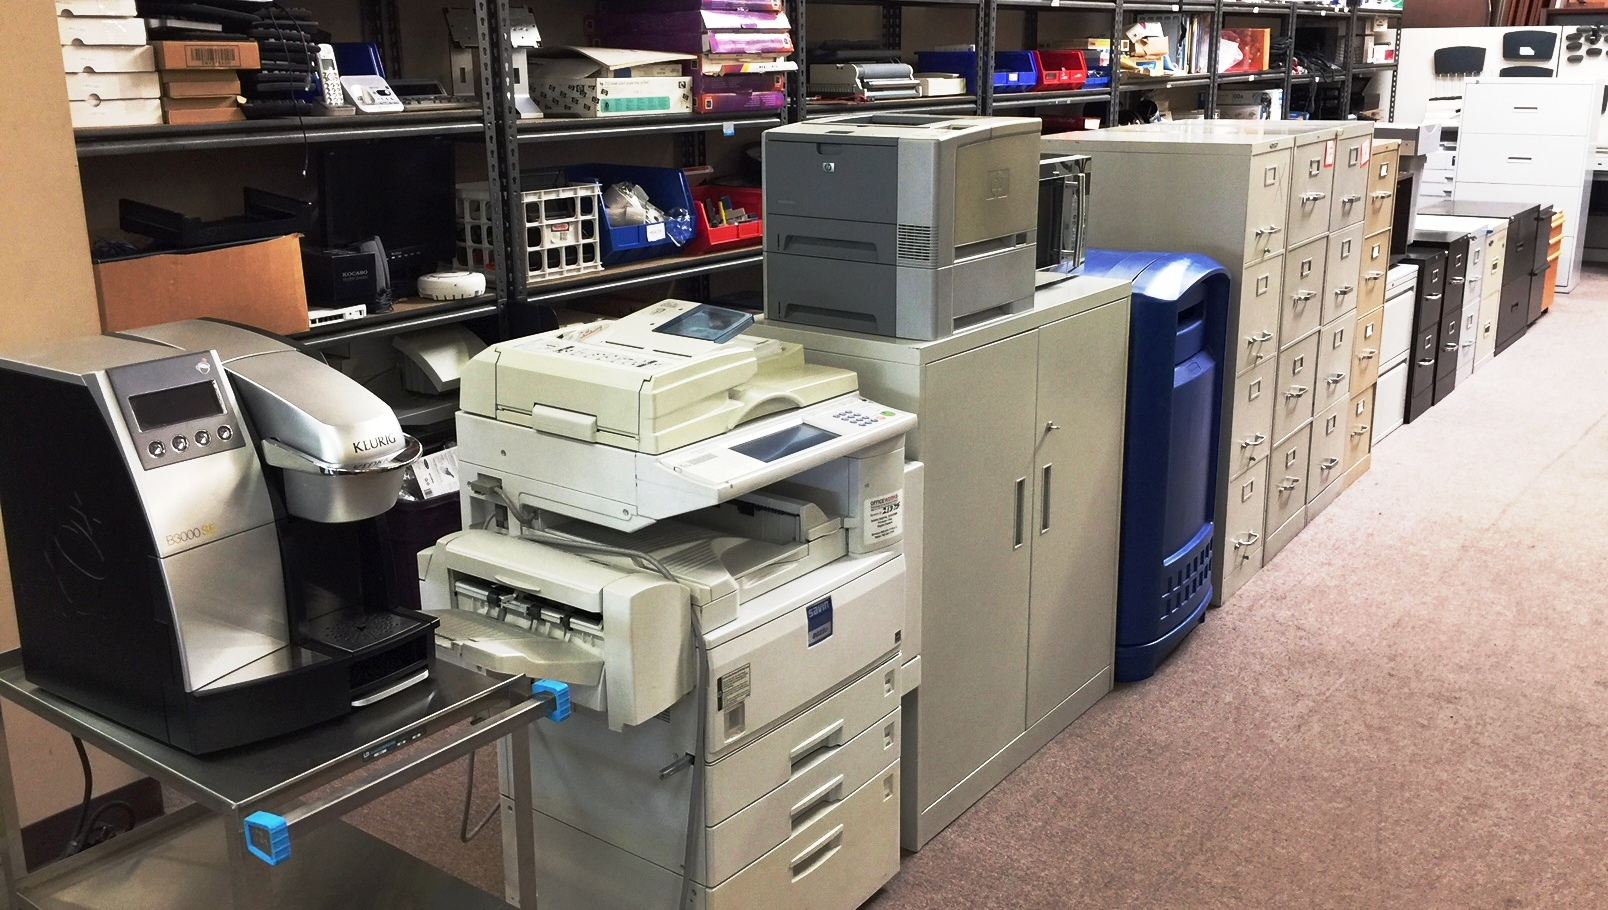 Copiers - FileCabinets - Coffee Makers and More